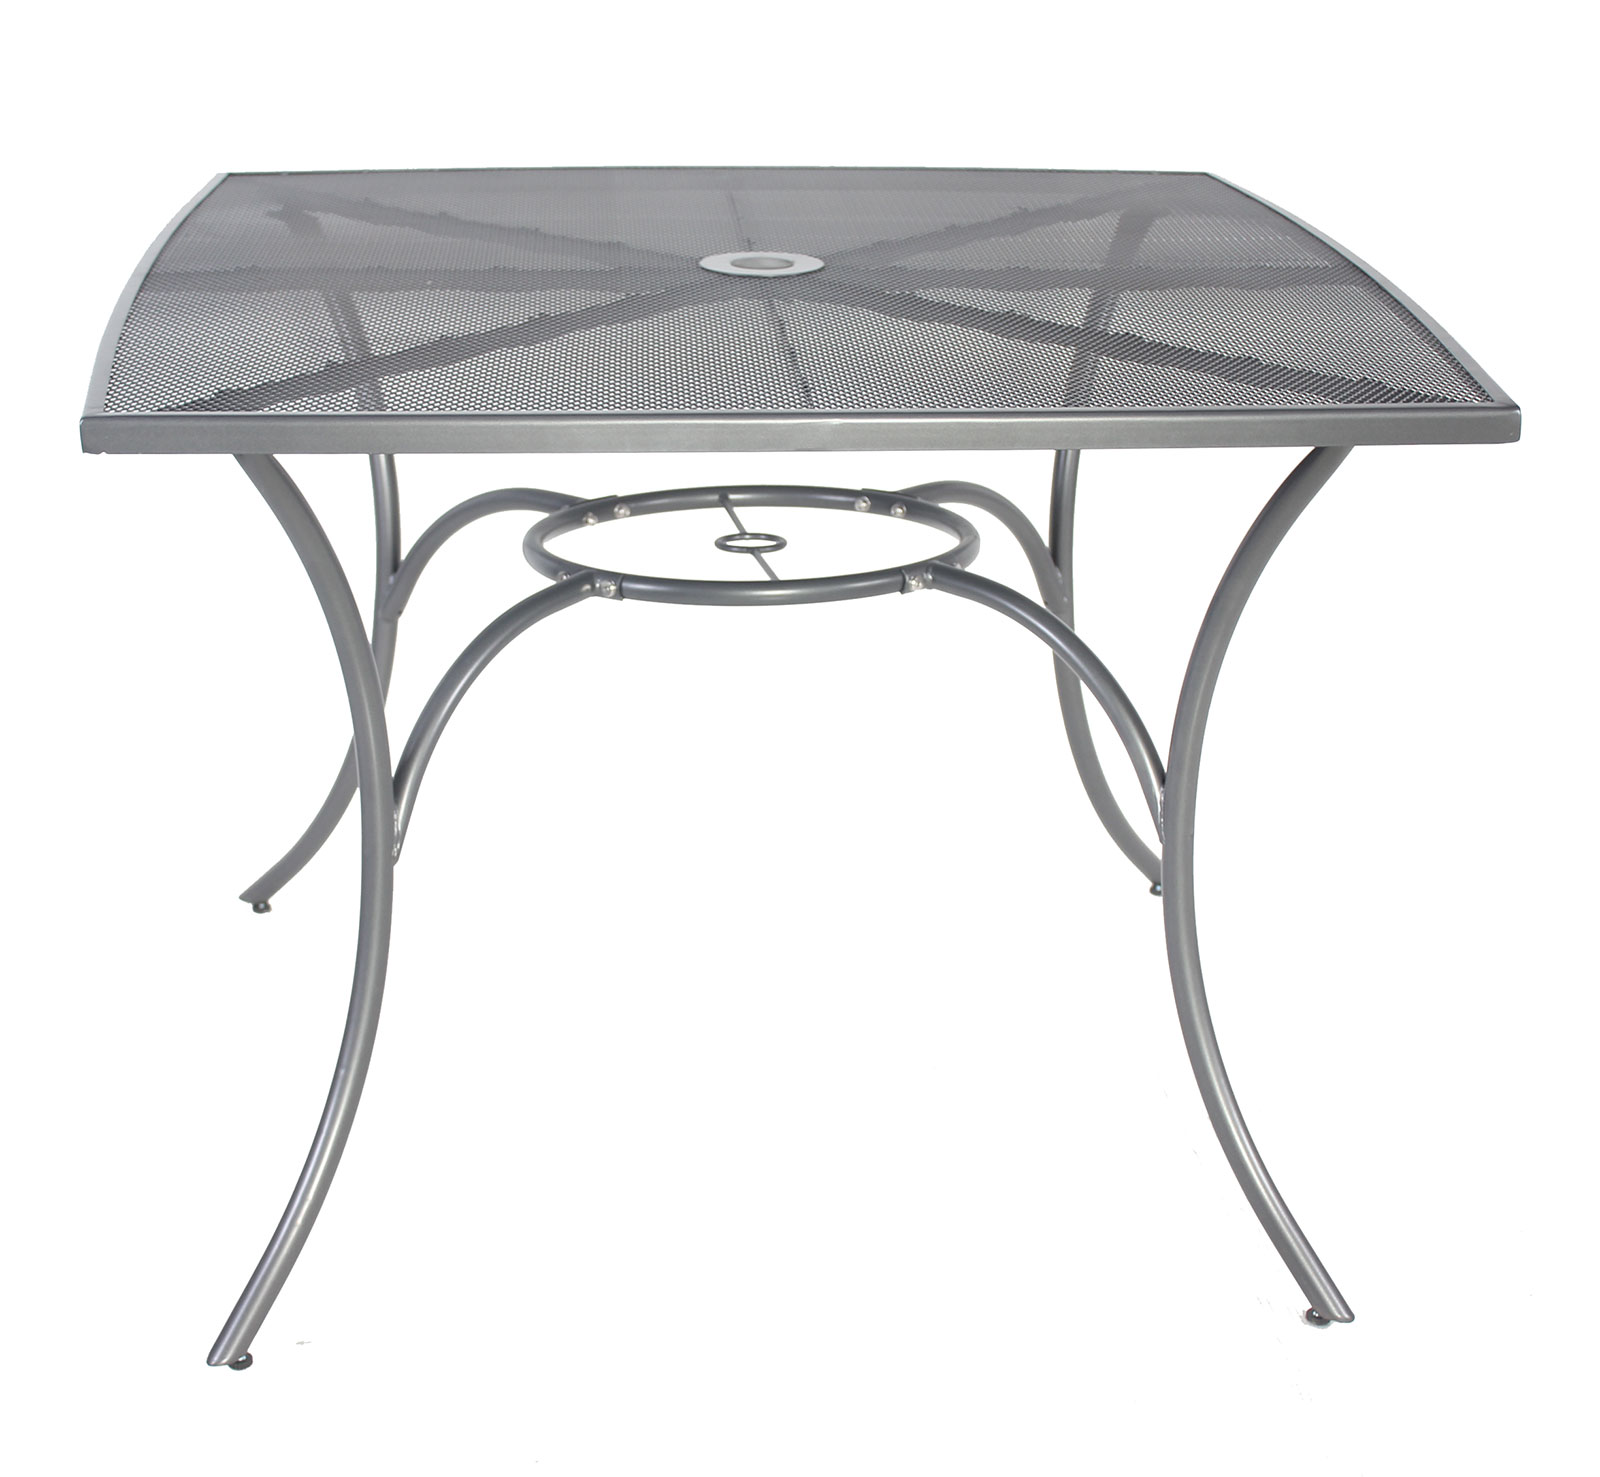 Charles bentley outdoor metal mesh 5 piece table and - Metal garden table and chairs ...